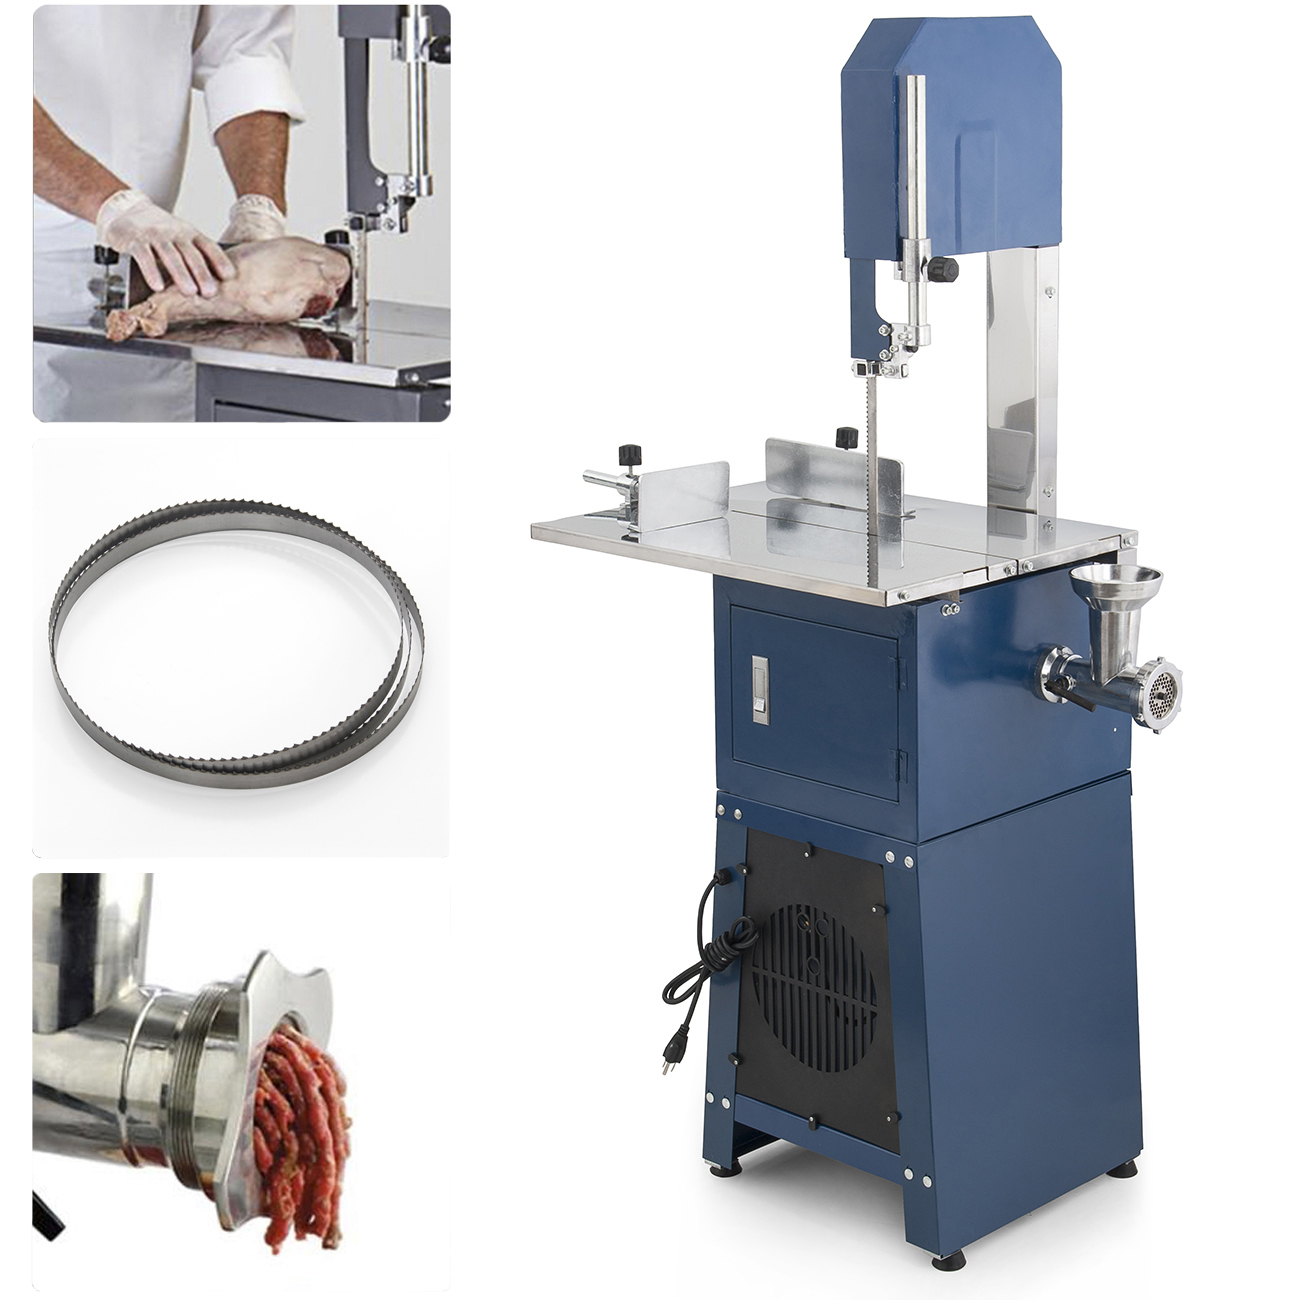 550w stand up meat band saw grinder dual electric food processor 2 550w stand up meat band saw grinder dual electric food processor 2 free blades keyboard keysfo Images